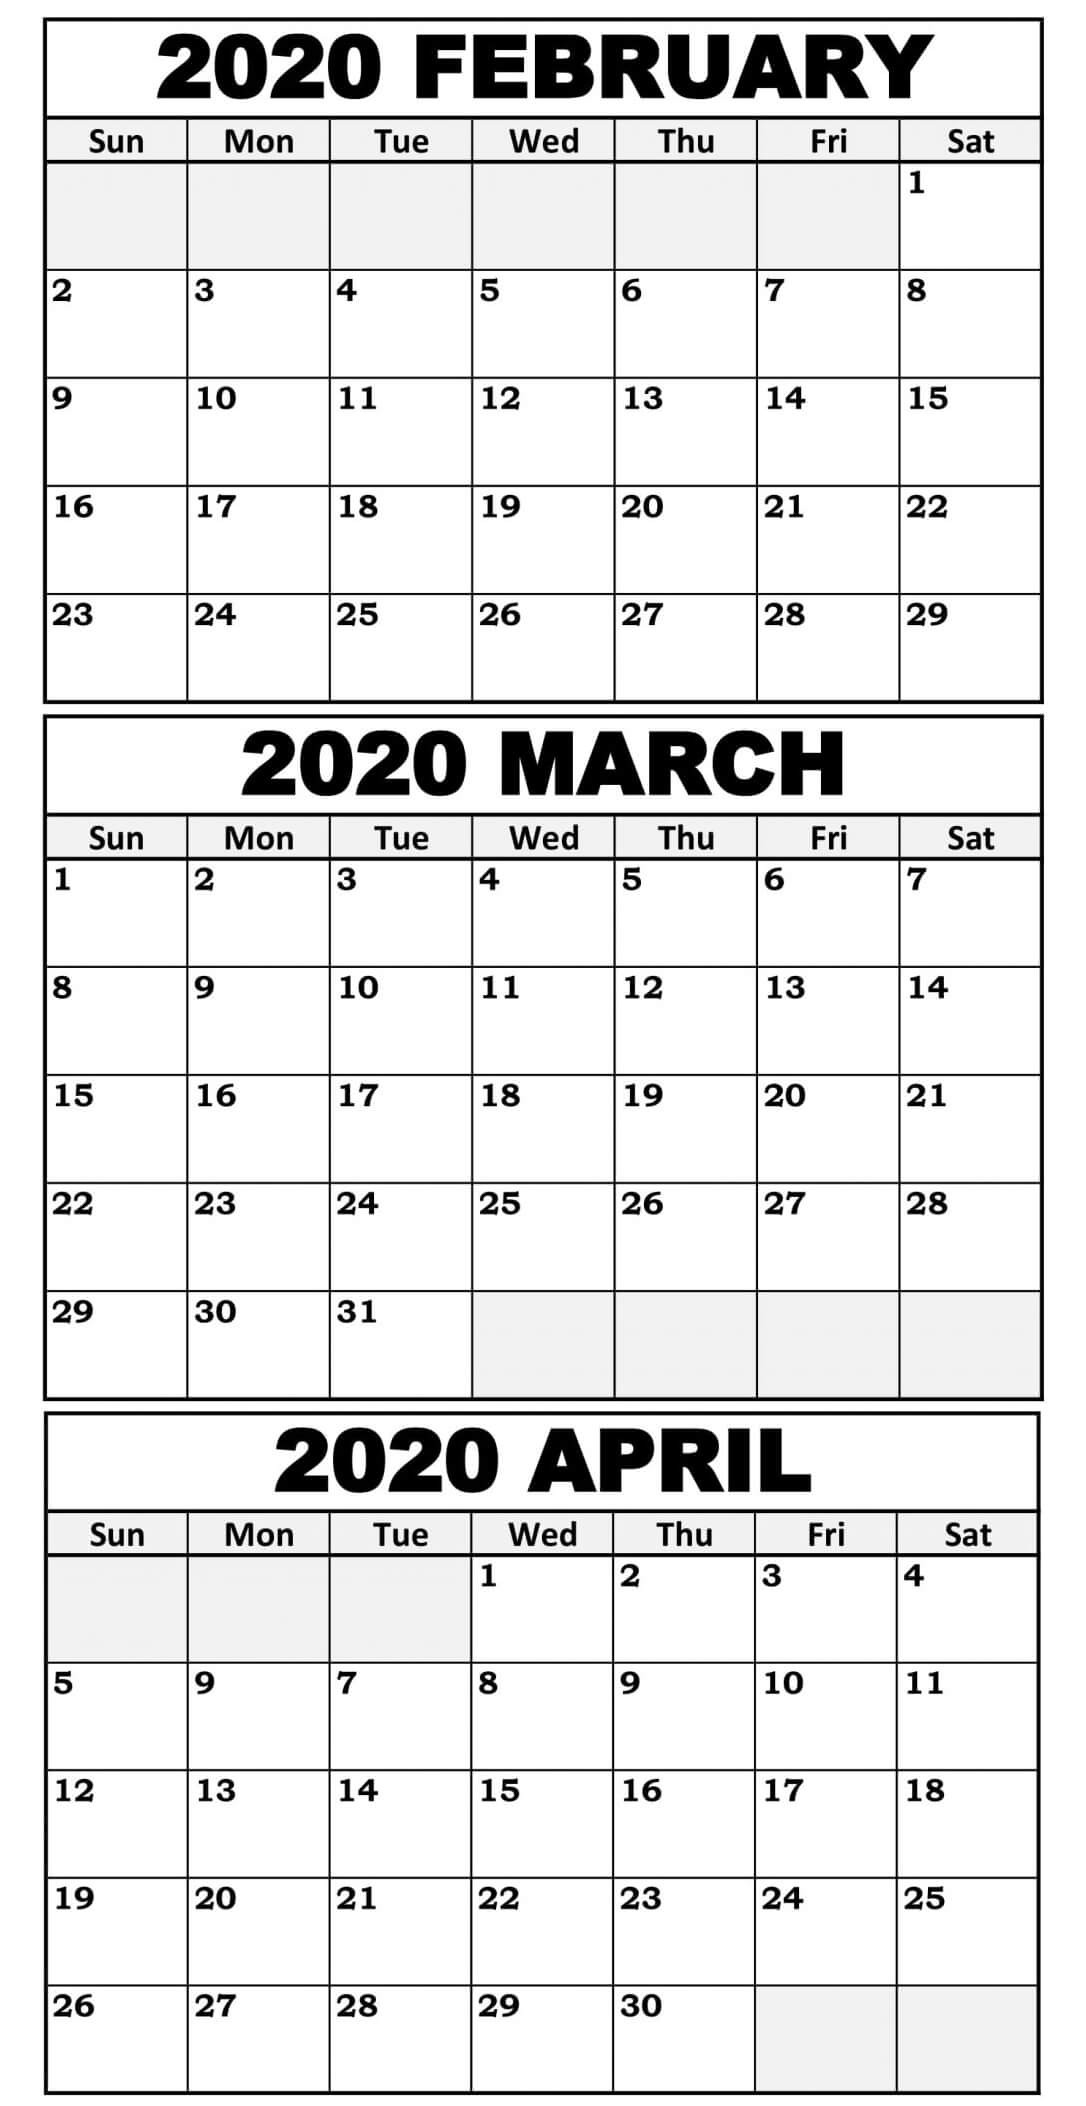 Calendar Template 3 Months Per Page Time And Date  2021 Printable 3 Monthly Per Page Calendar